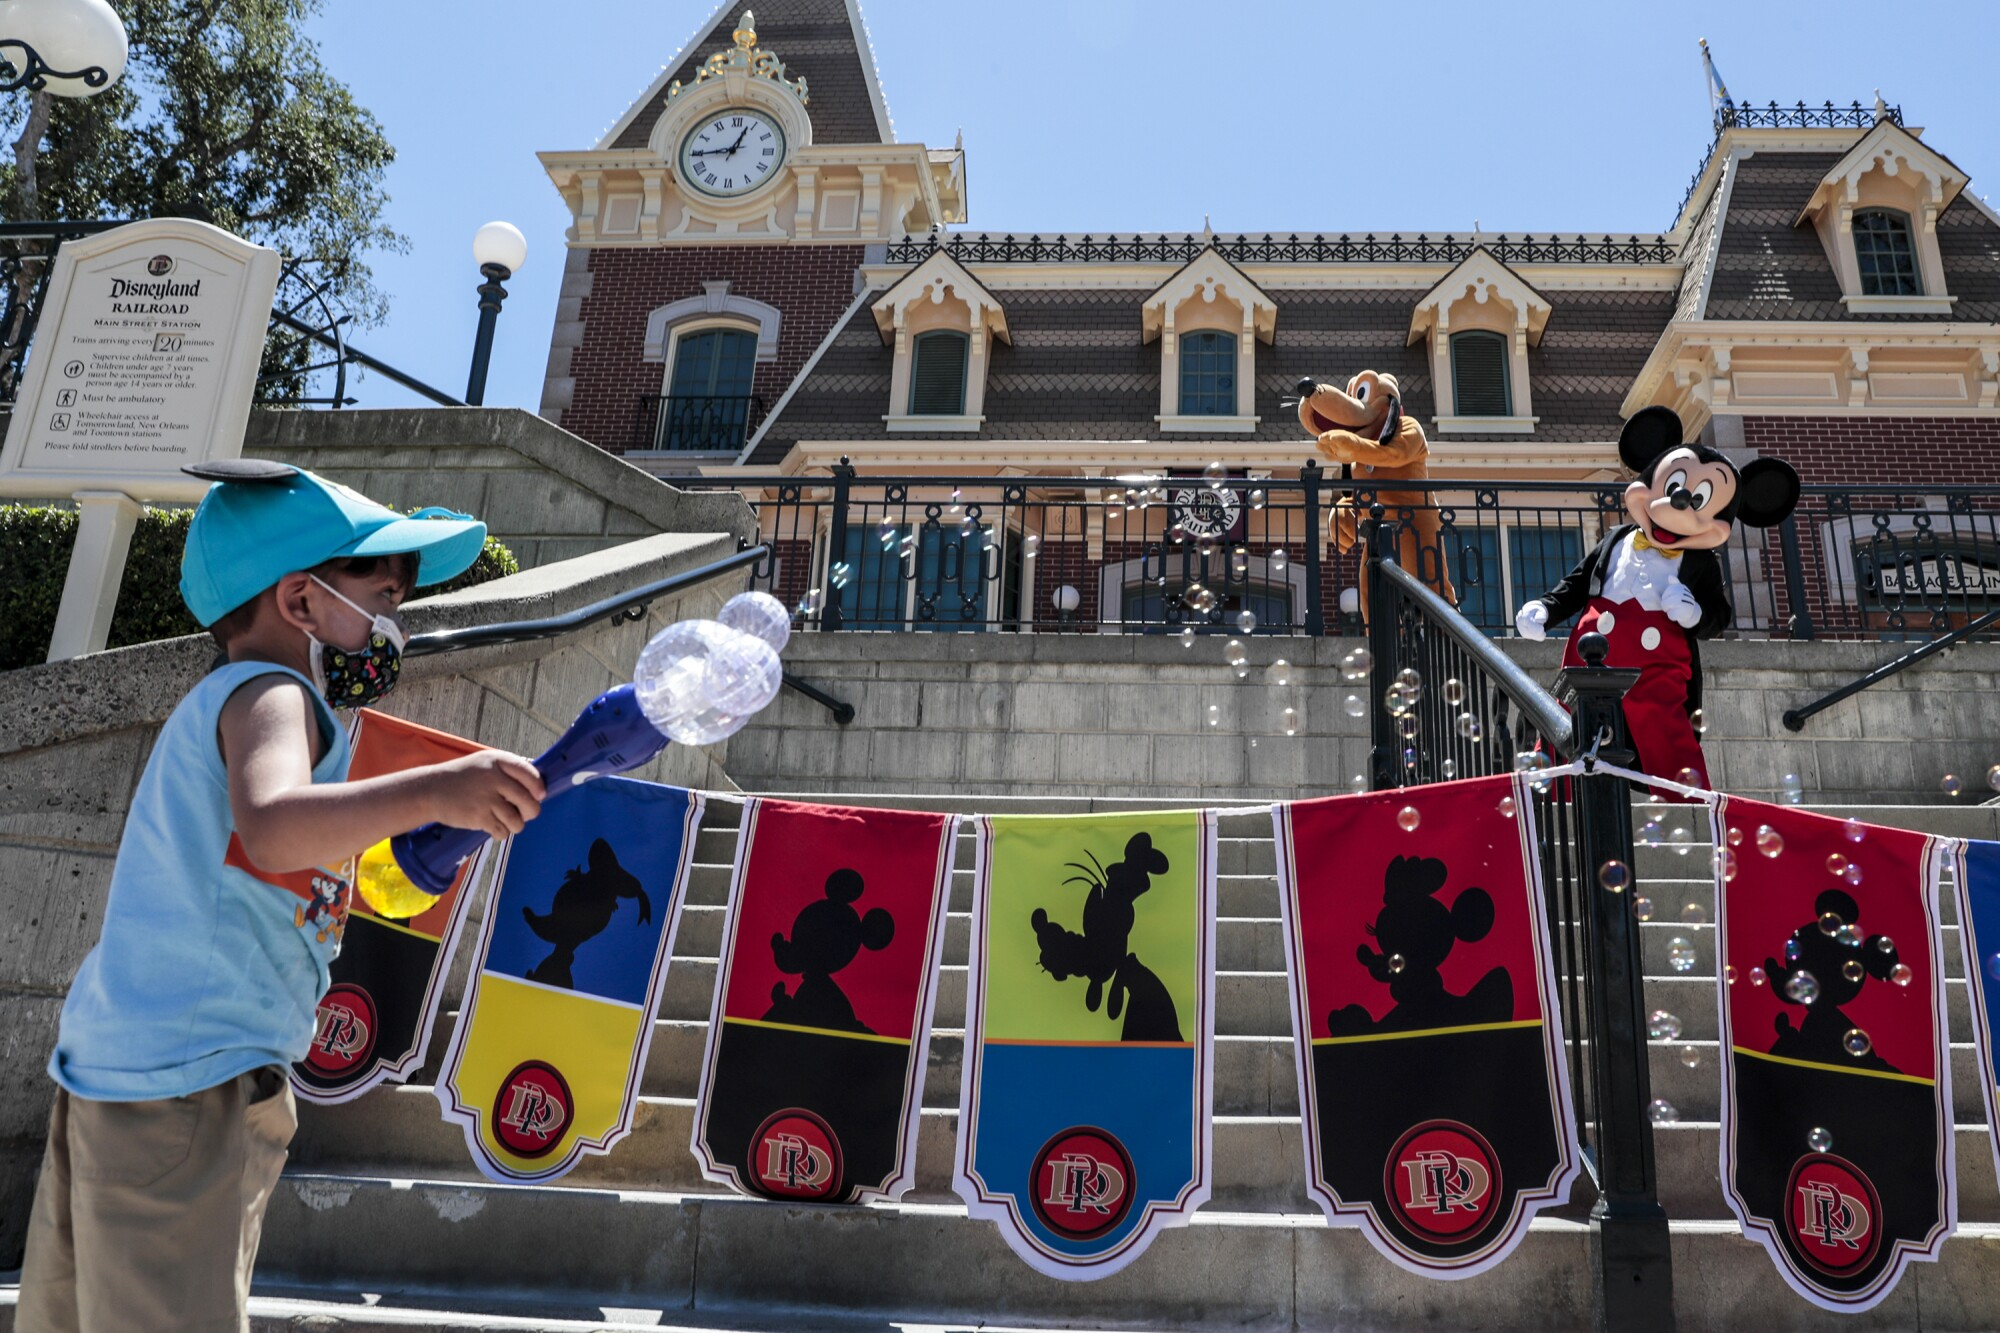 A masked employee greets a Disneyland visitor wearing Minnie Mouse-themed gear